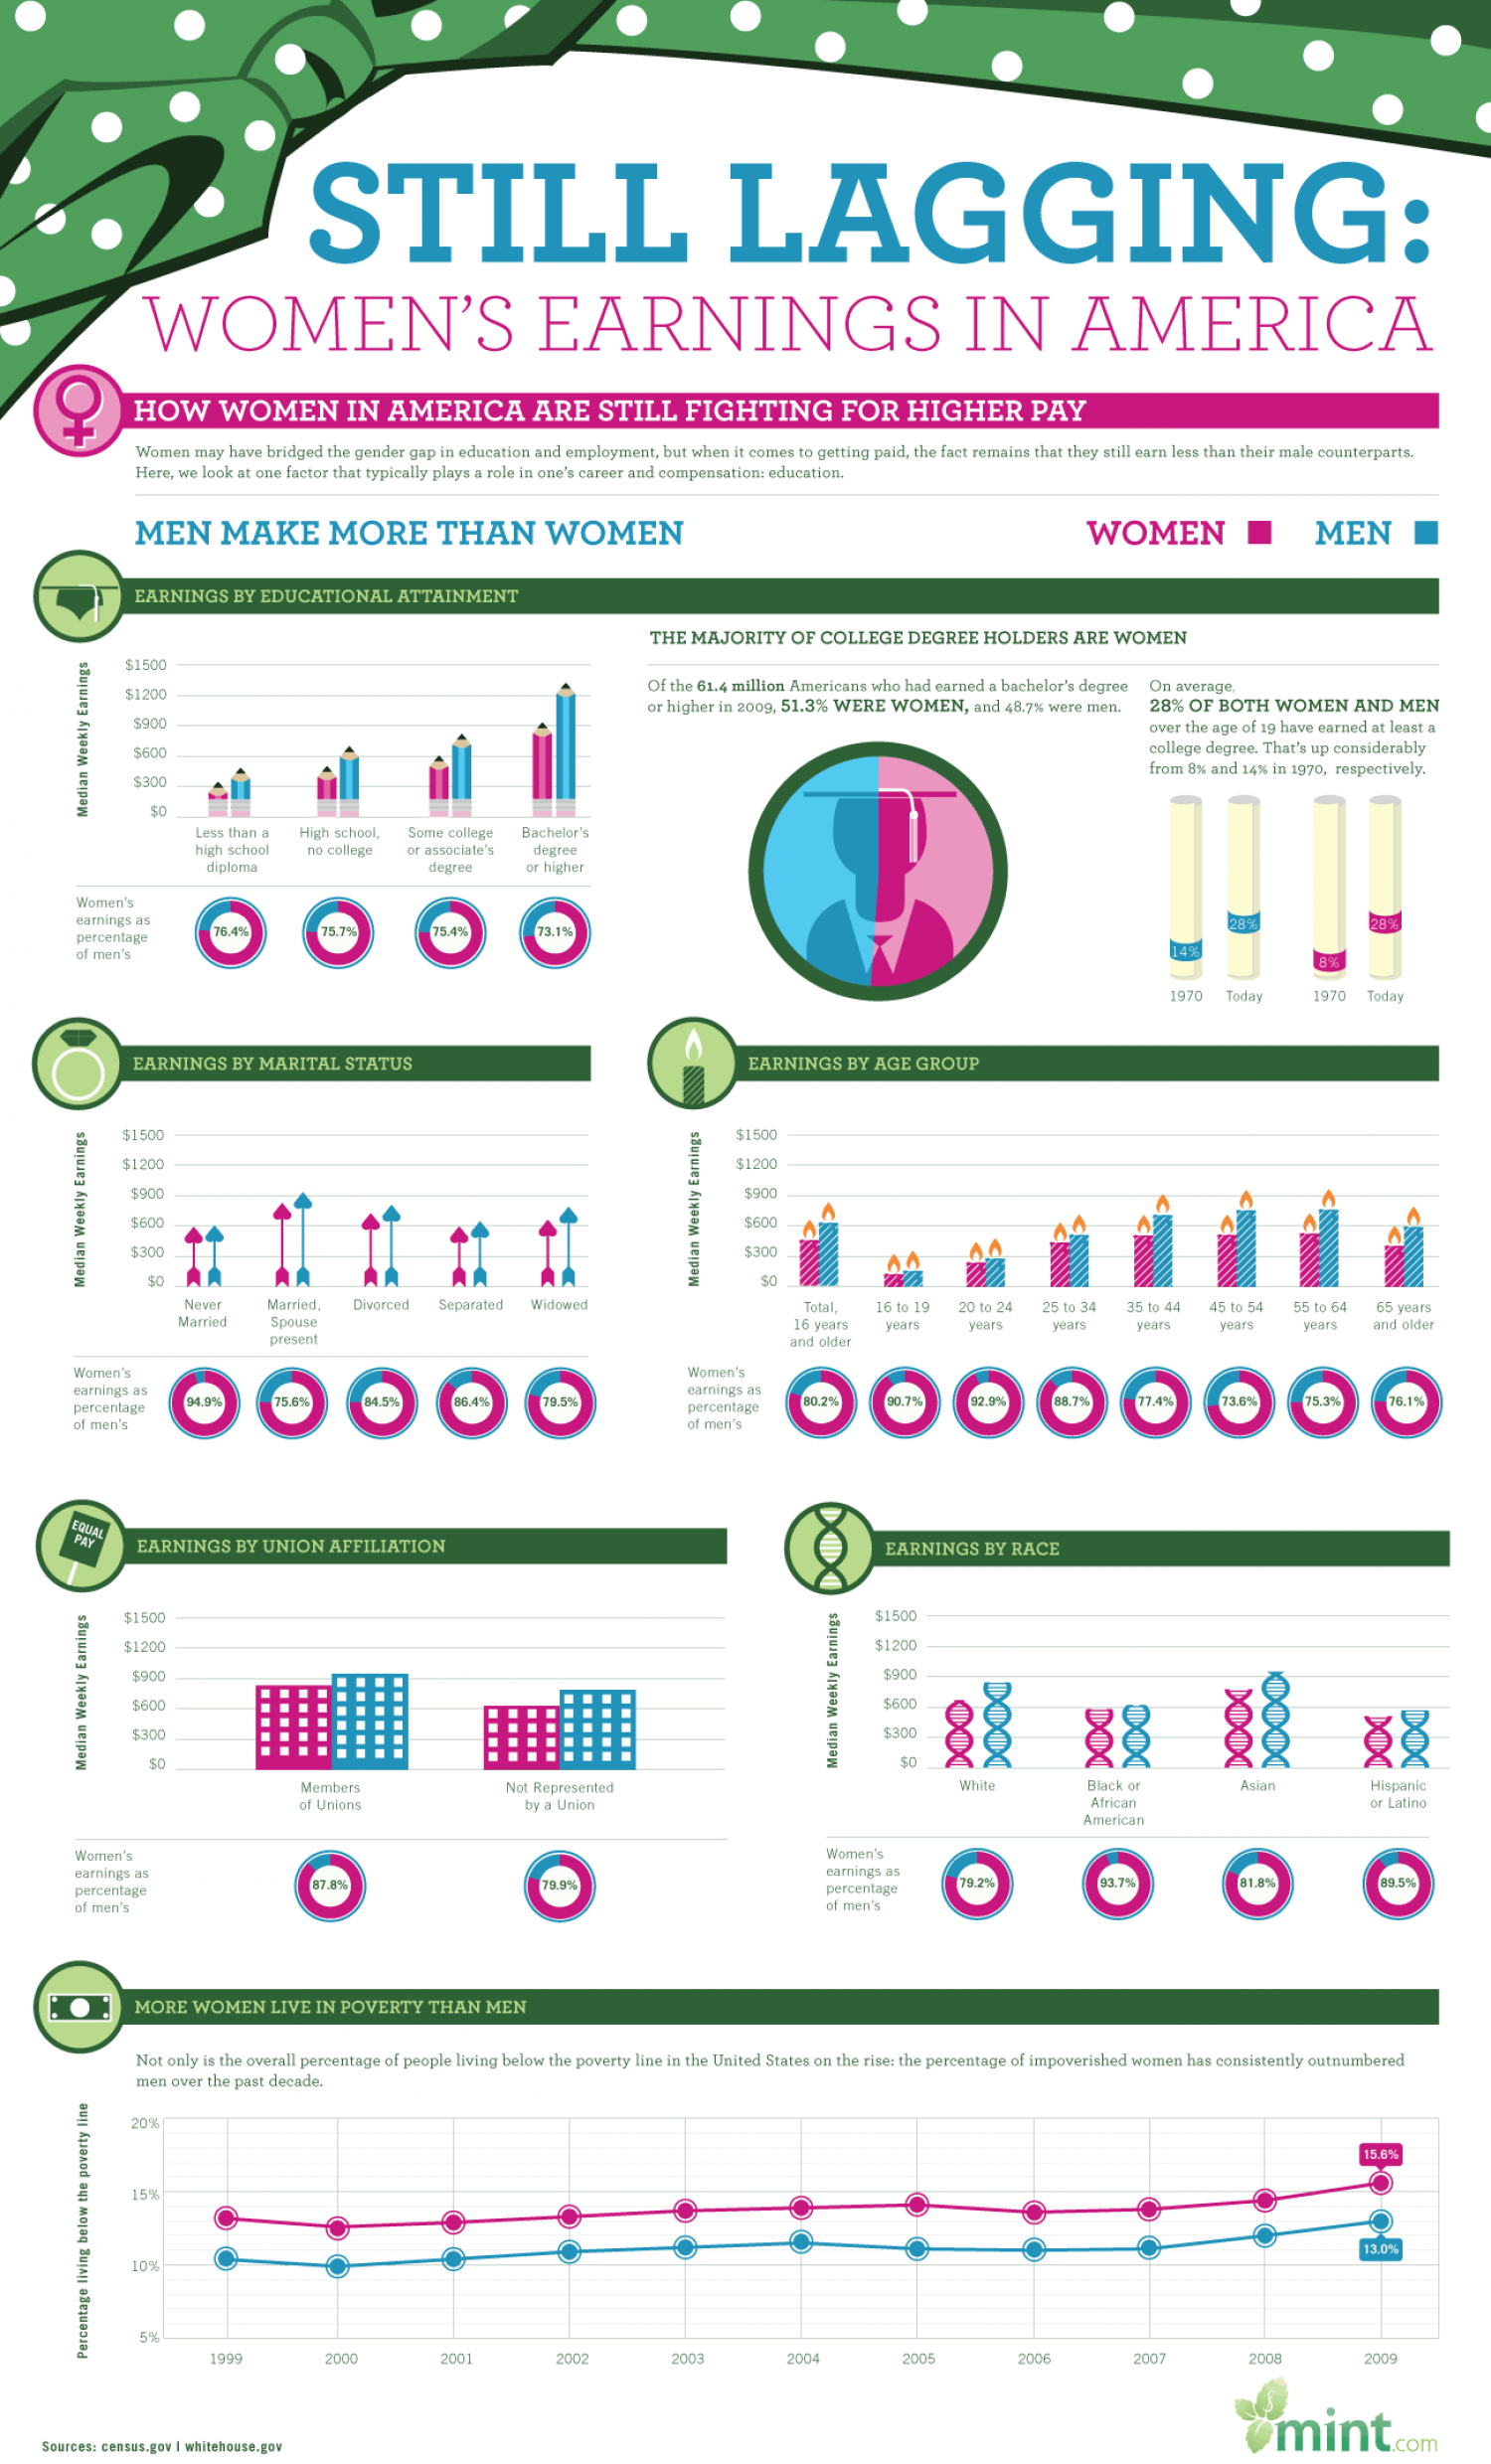 Still lagging: Women's Earnings in America Infographic